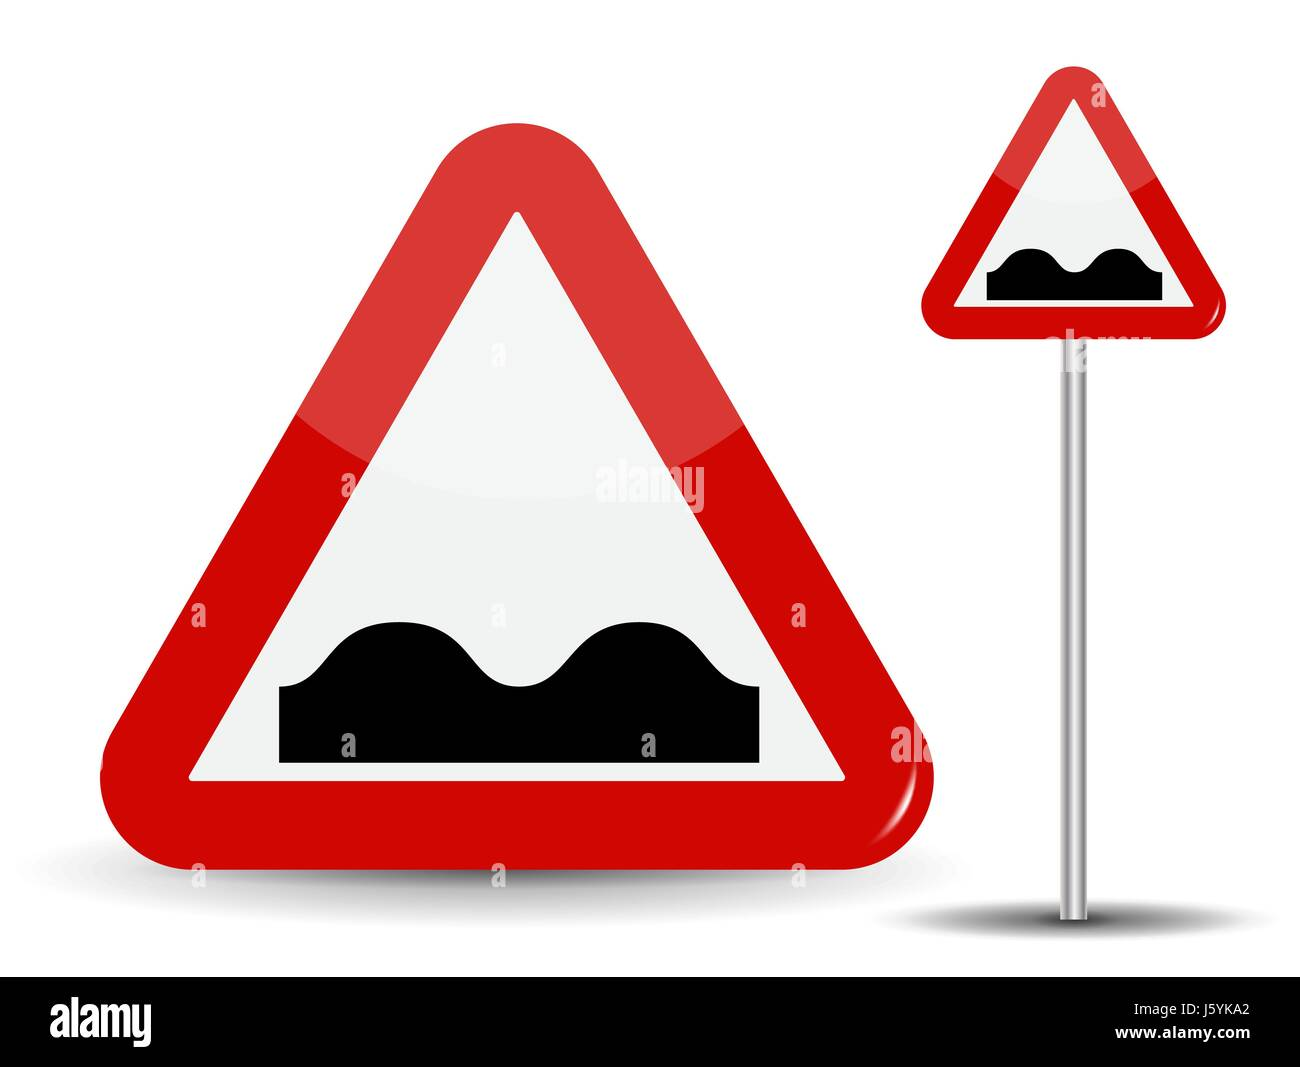 Road sign Warning Uneven road. In Red Triangle image of bad cover with pits. Vector Illustration. - Stock Image